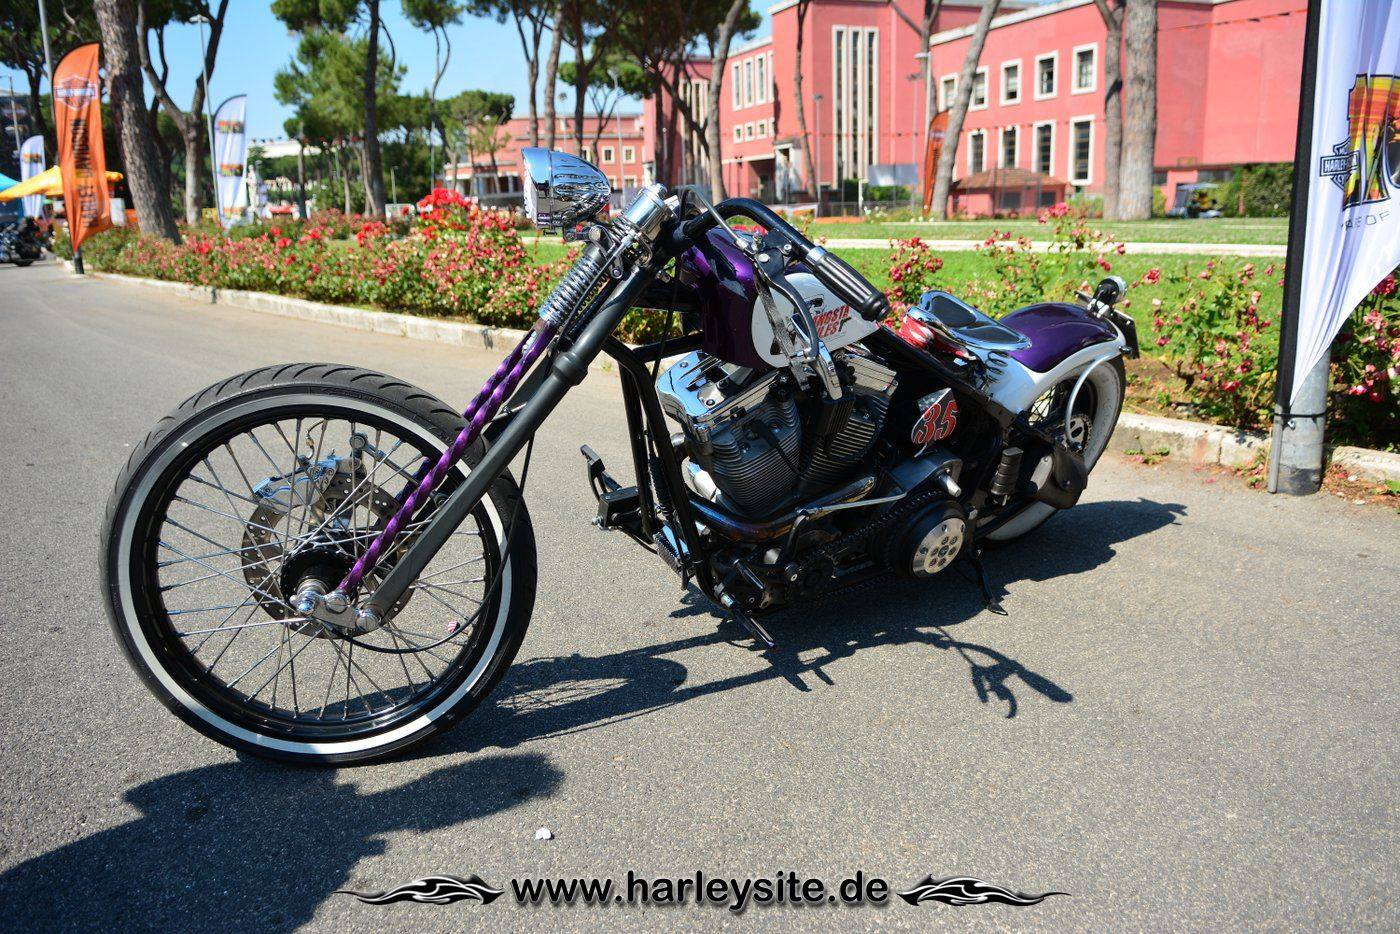 Harley Rom 110th 115